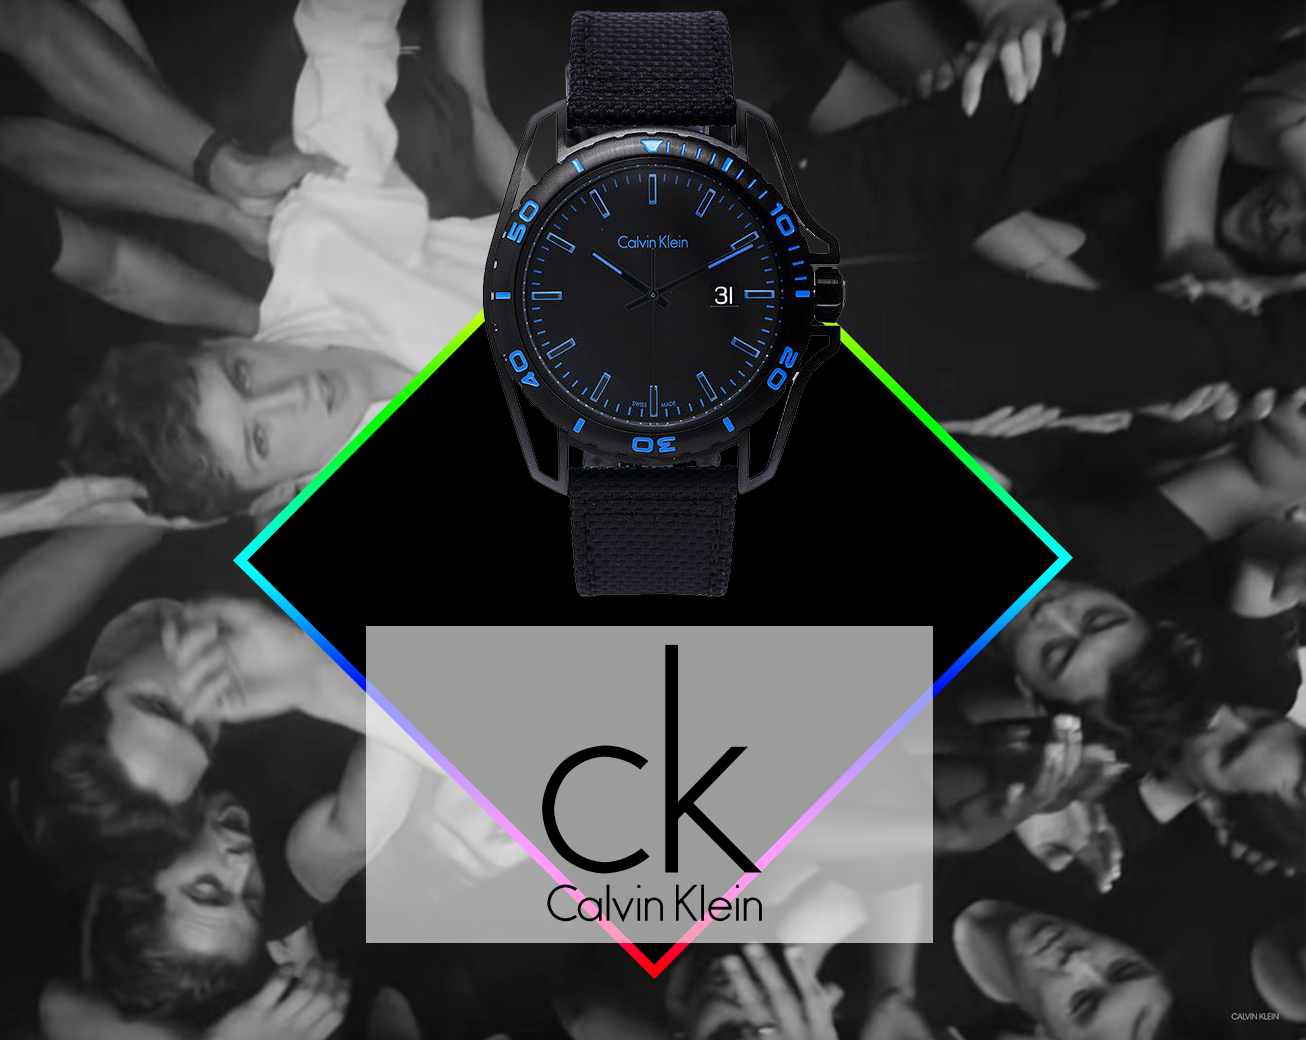 Calvin Klein watches